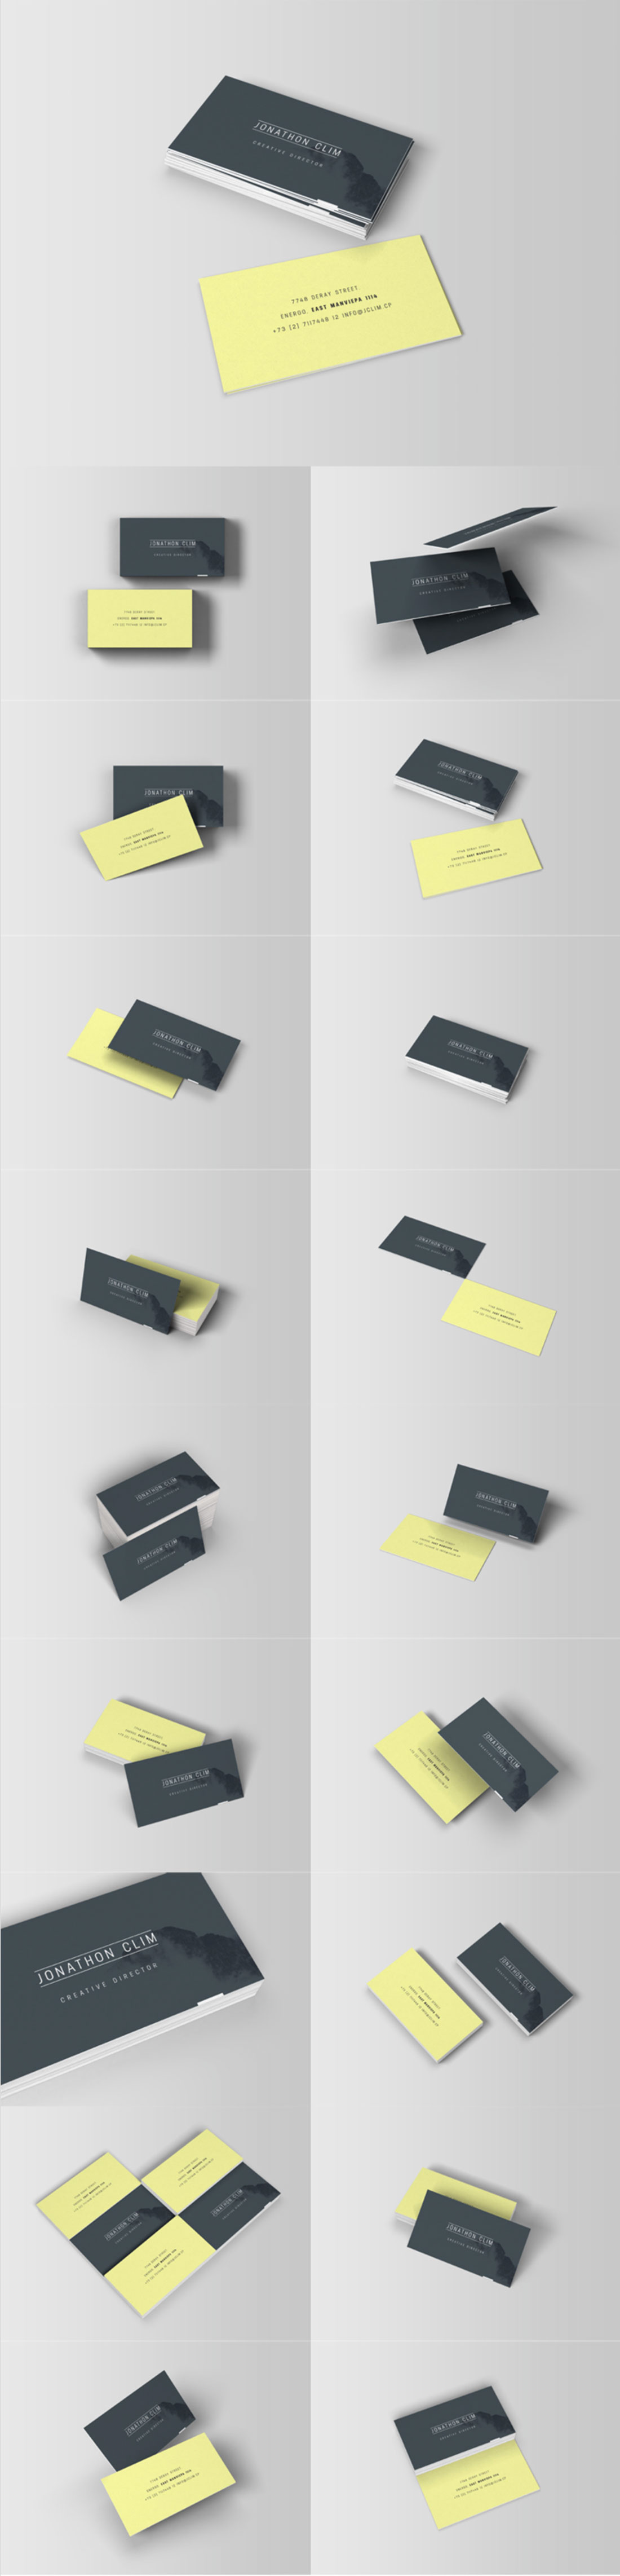 Free Download 8 Business Card Mockups MightyDeals